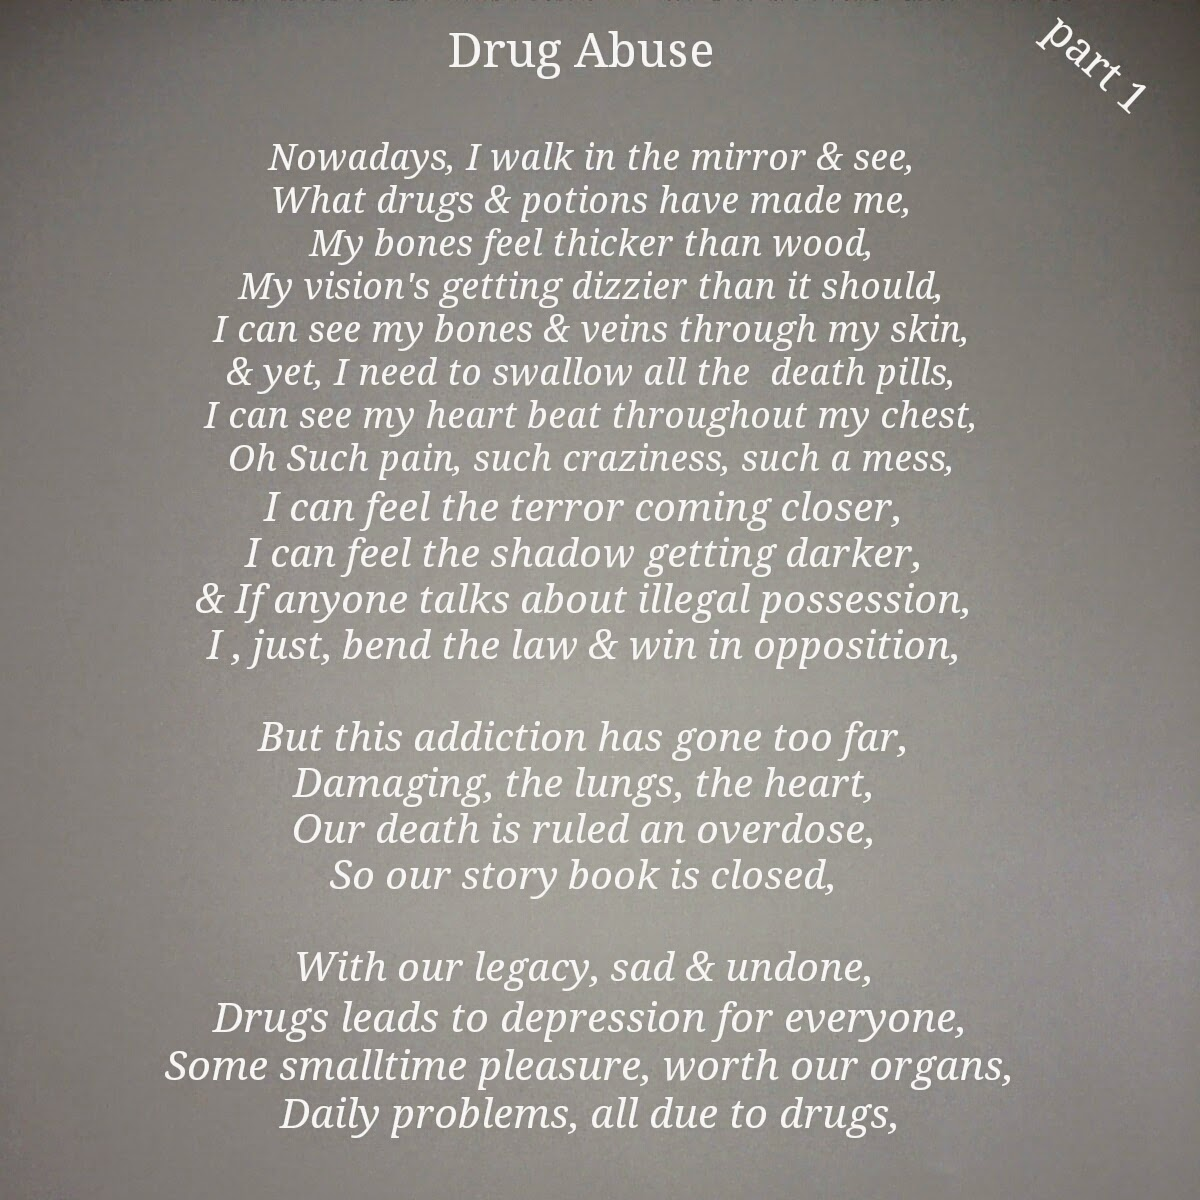 Collection of The Young Ahmed Poetry: Drug Abuse (part 1 out of 3)